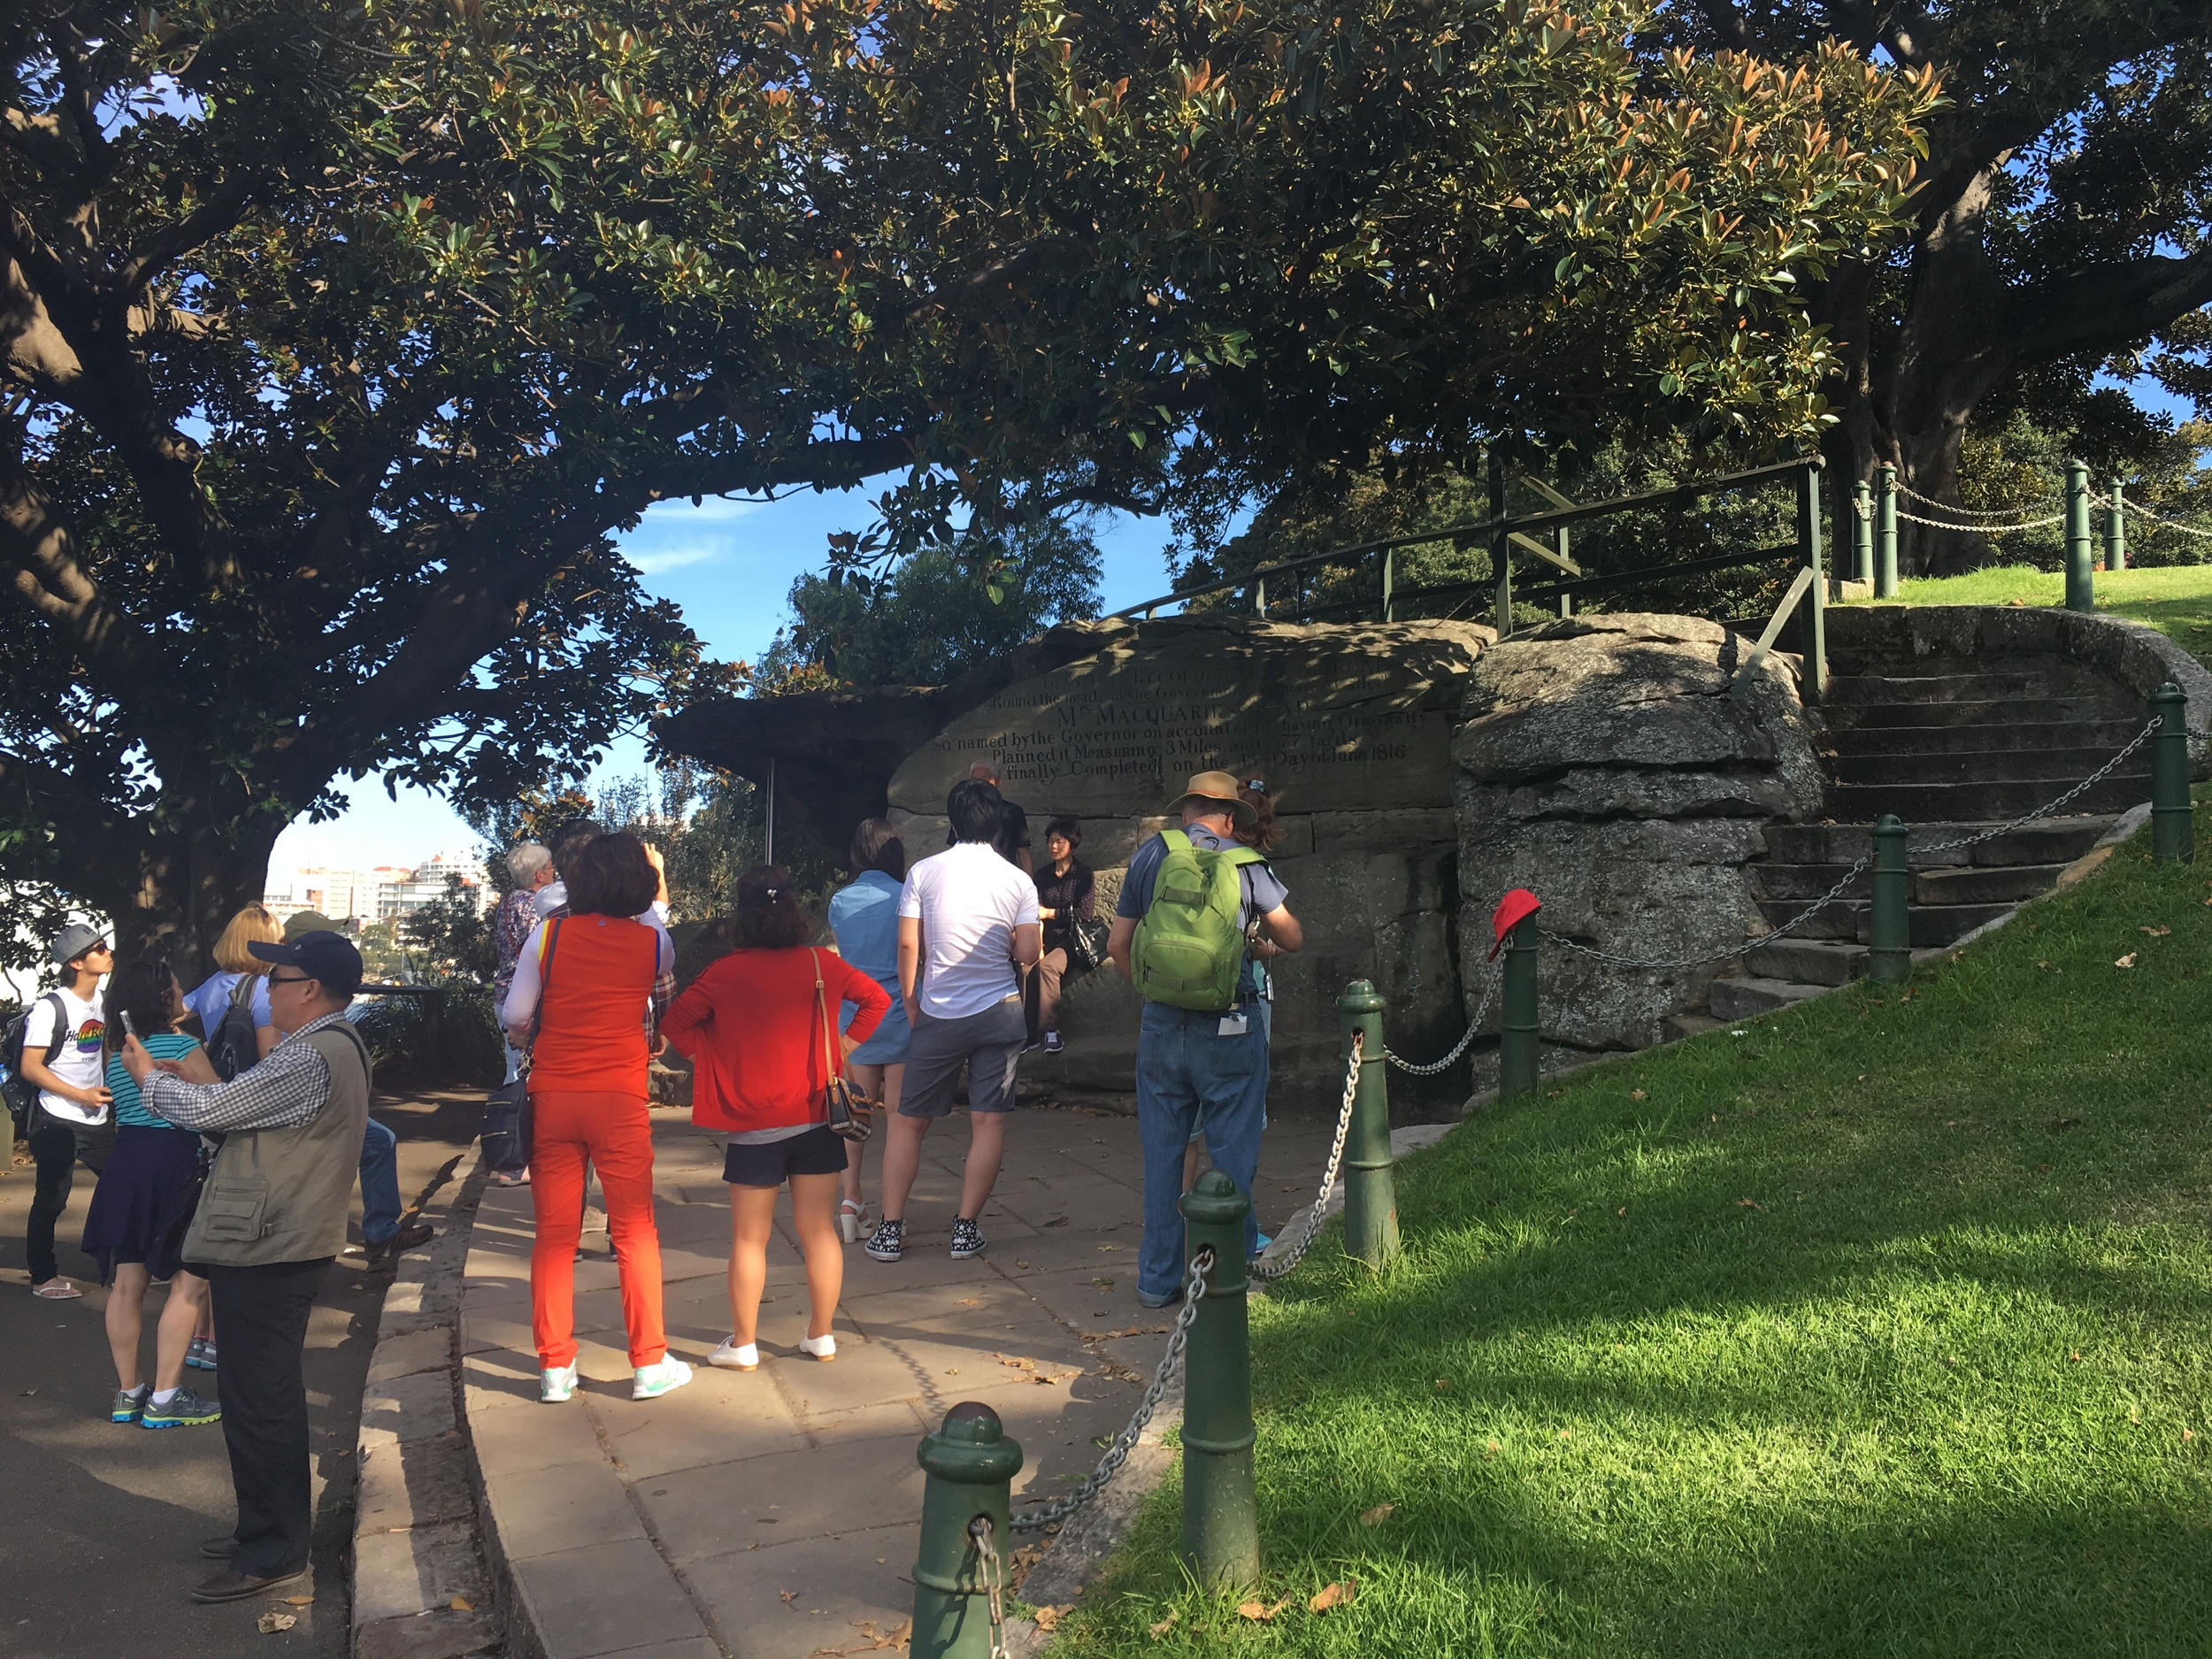 Taking turns on Mrs Macquarie's Chair